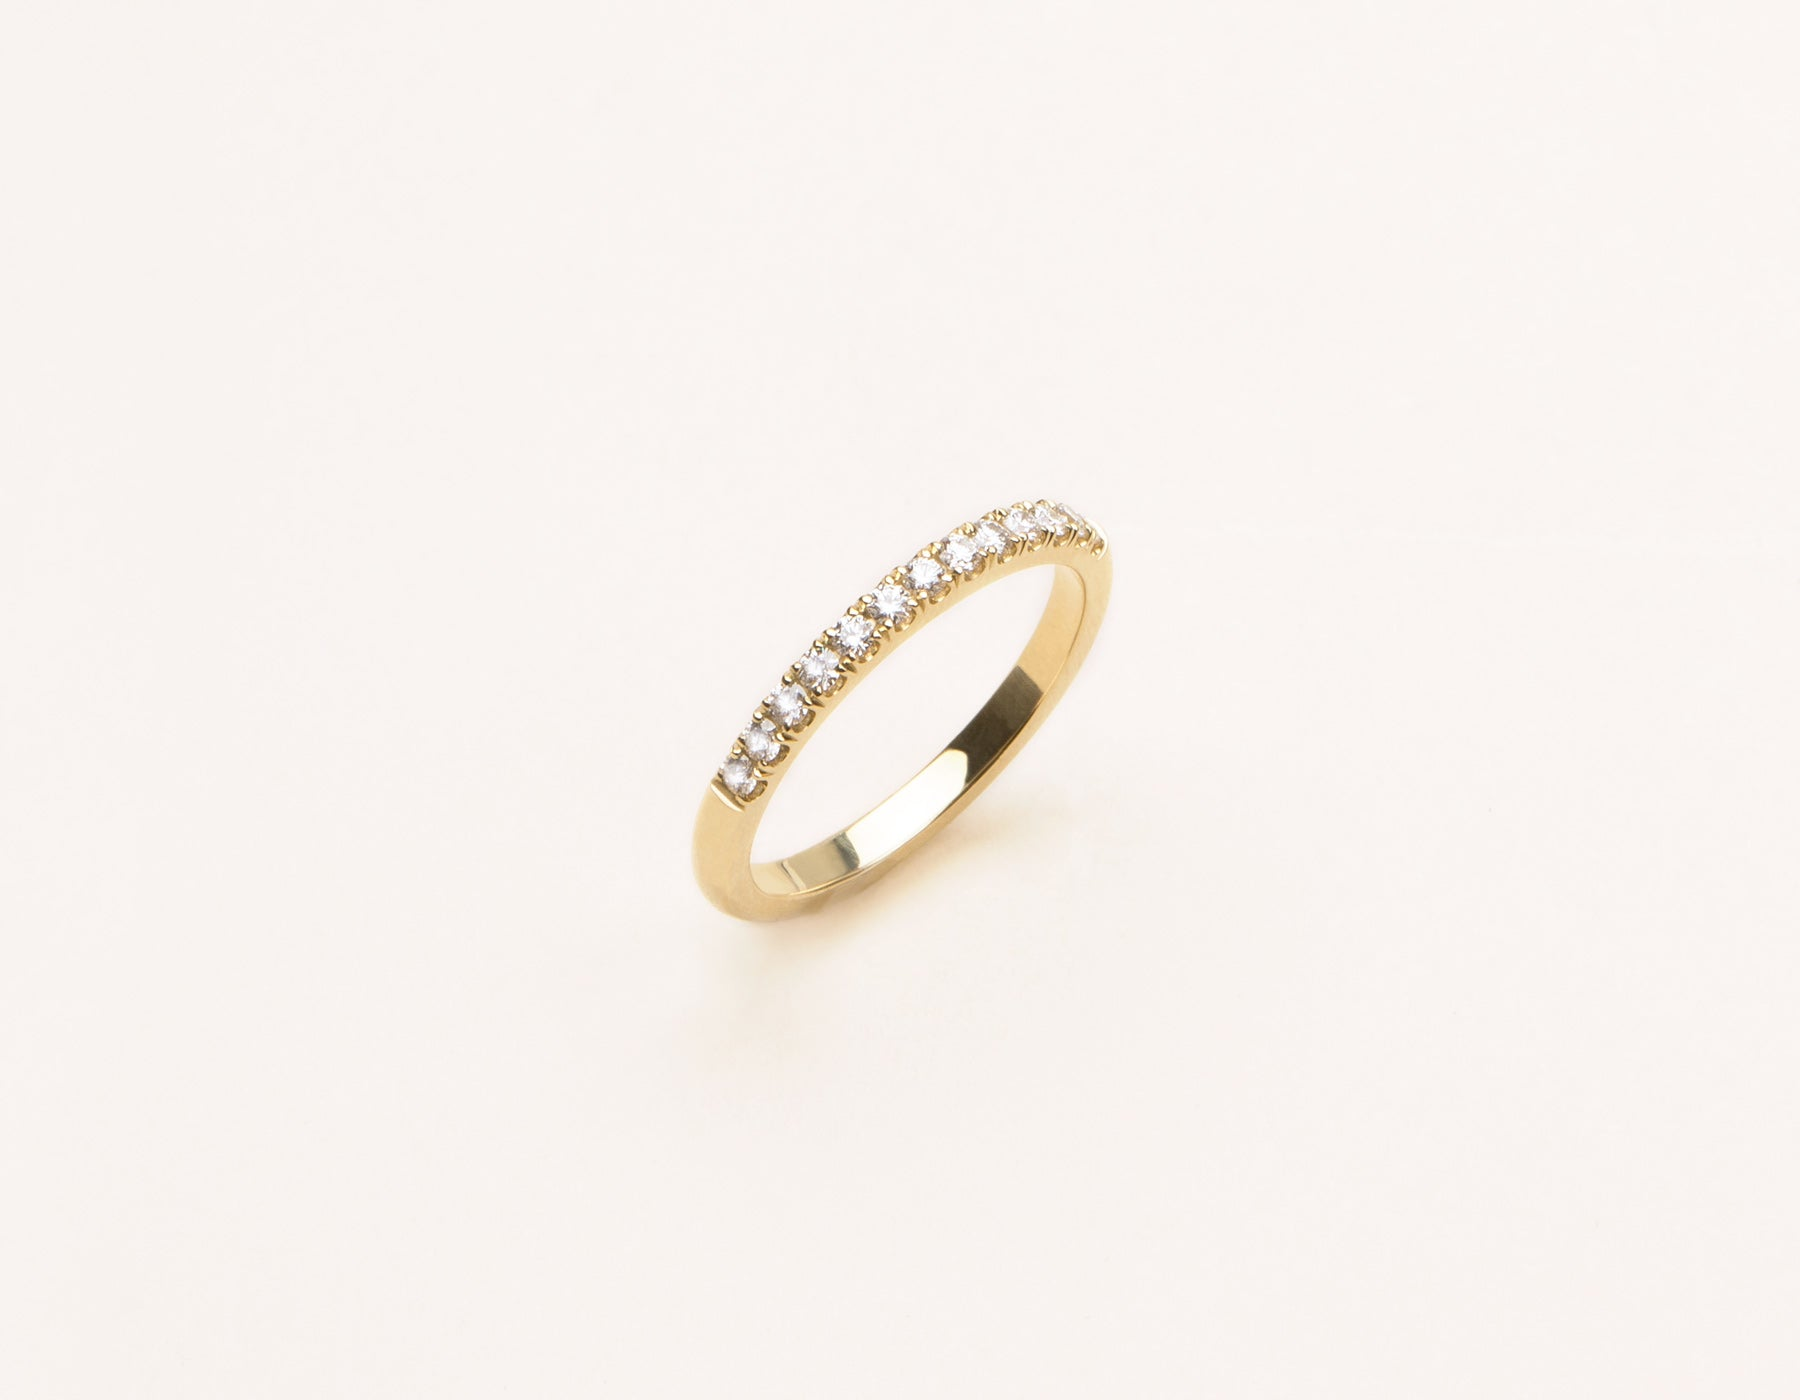 f8e41581d01 Modern elegant 14k solid gold Large Diamond Pave Band Vrai and Oro  minimalist jewelry